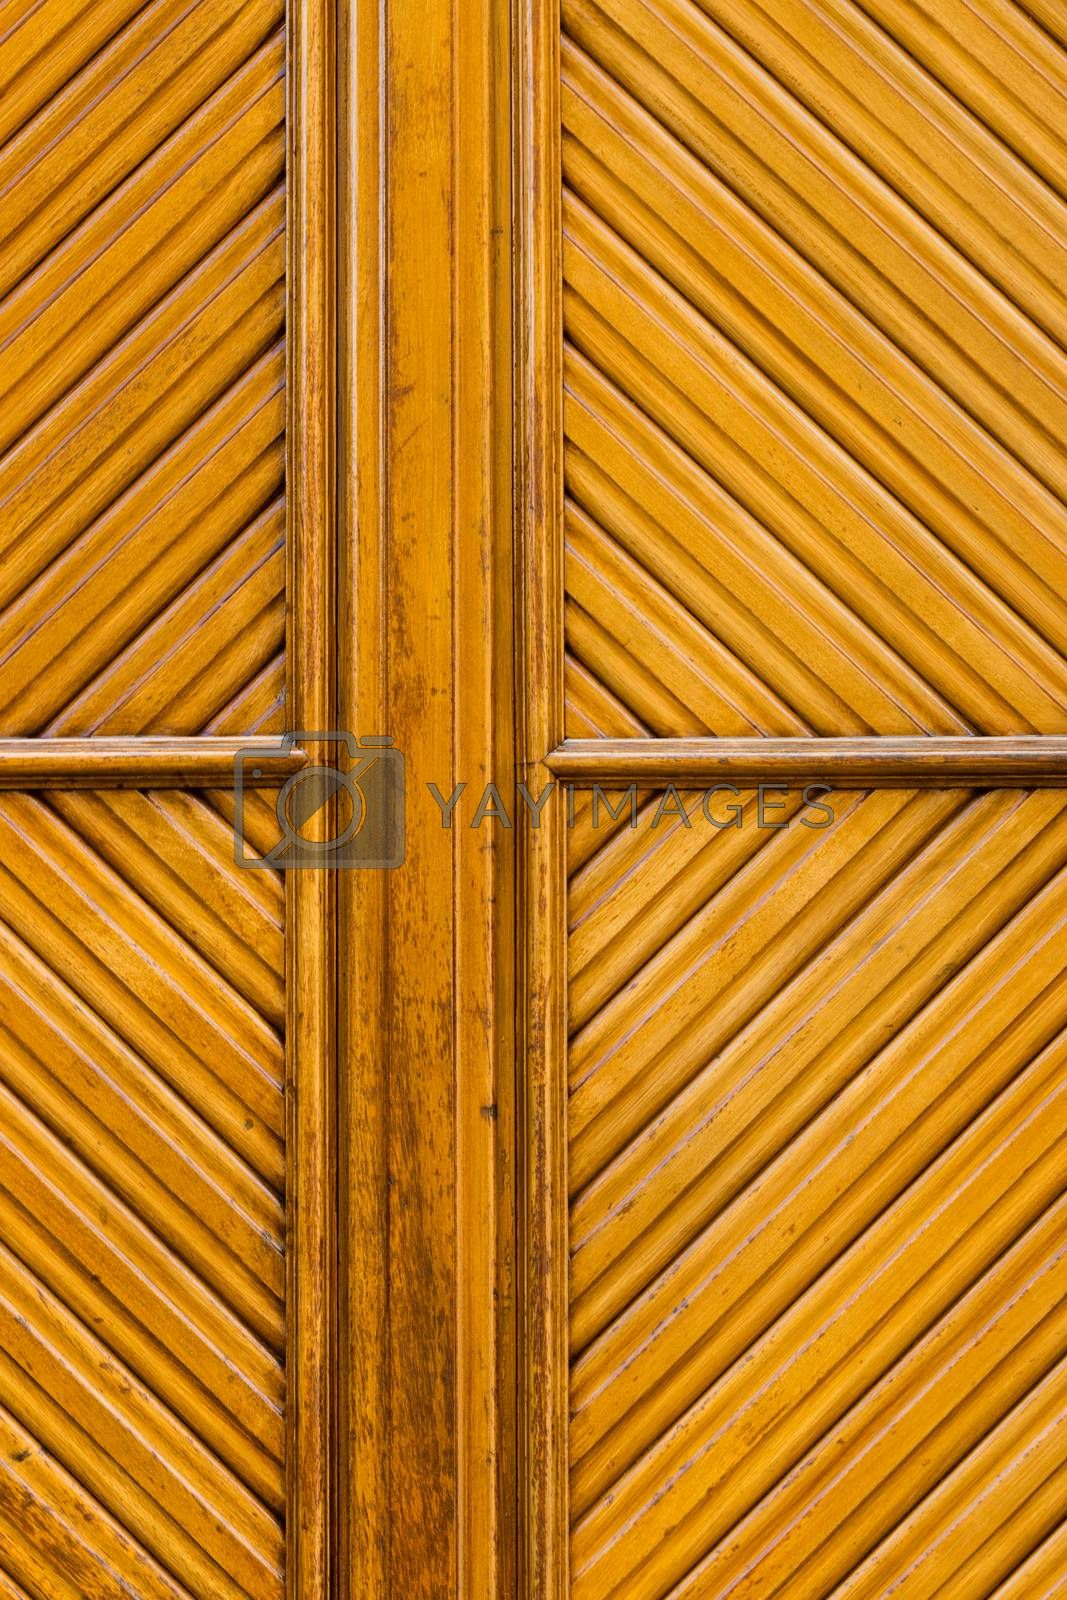 Fine rhomboid pattern in a door made from wood and yellowish coloured